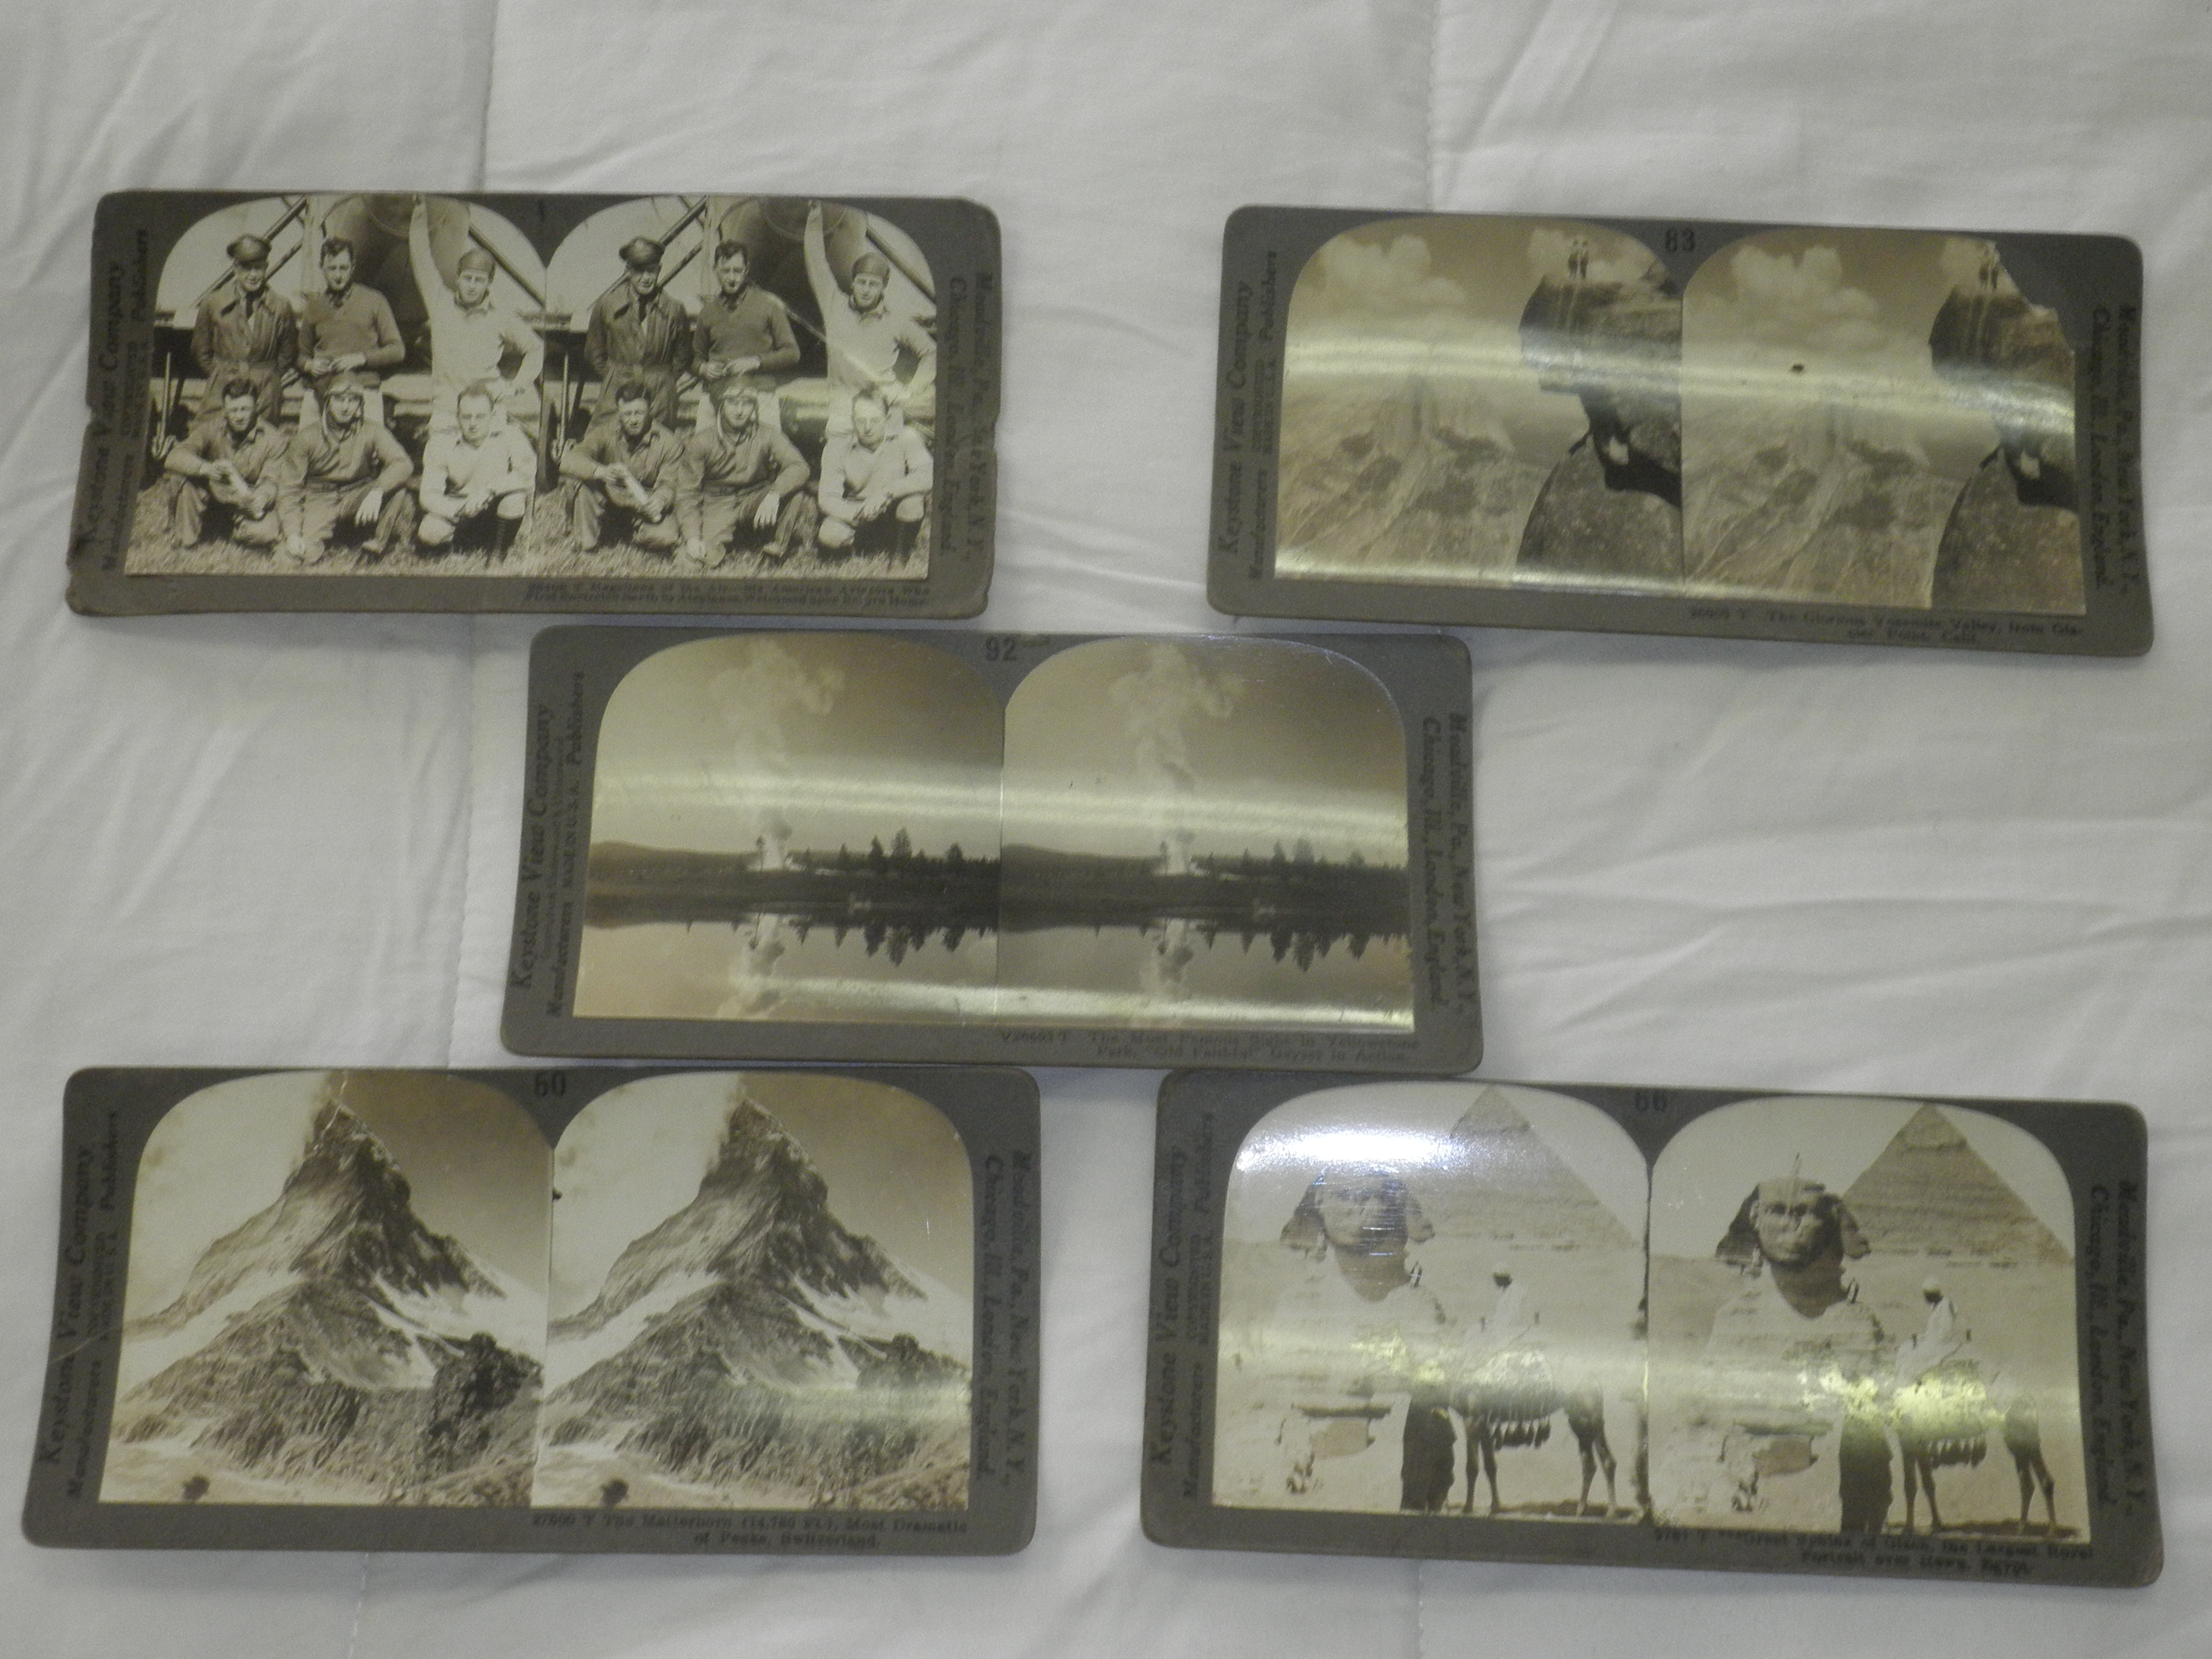 Antique stereoscope slides modified